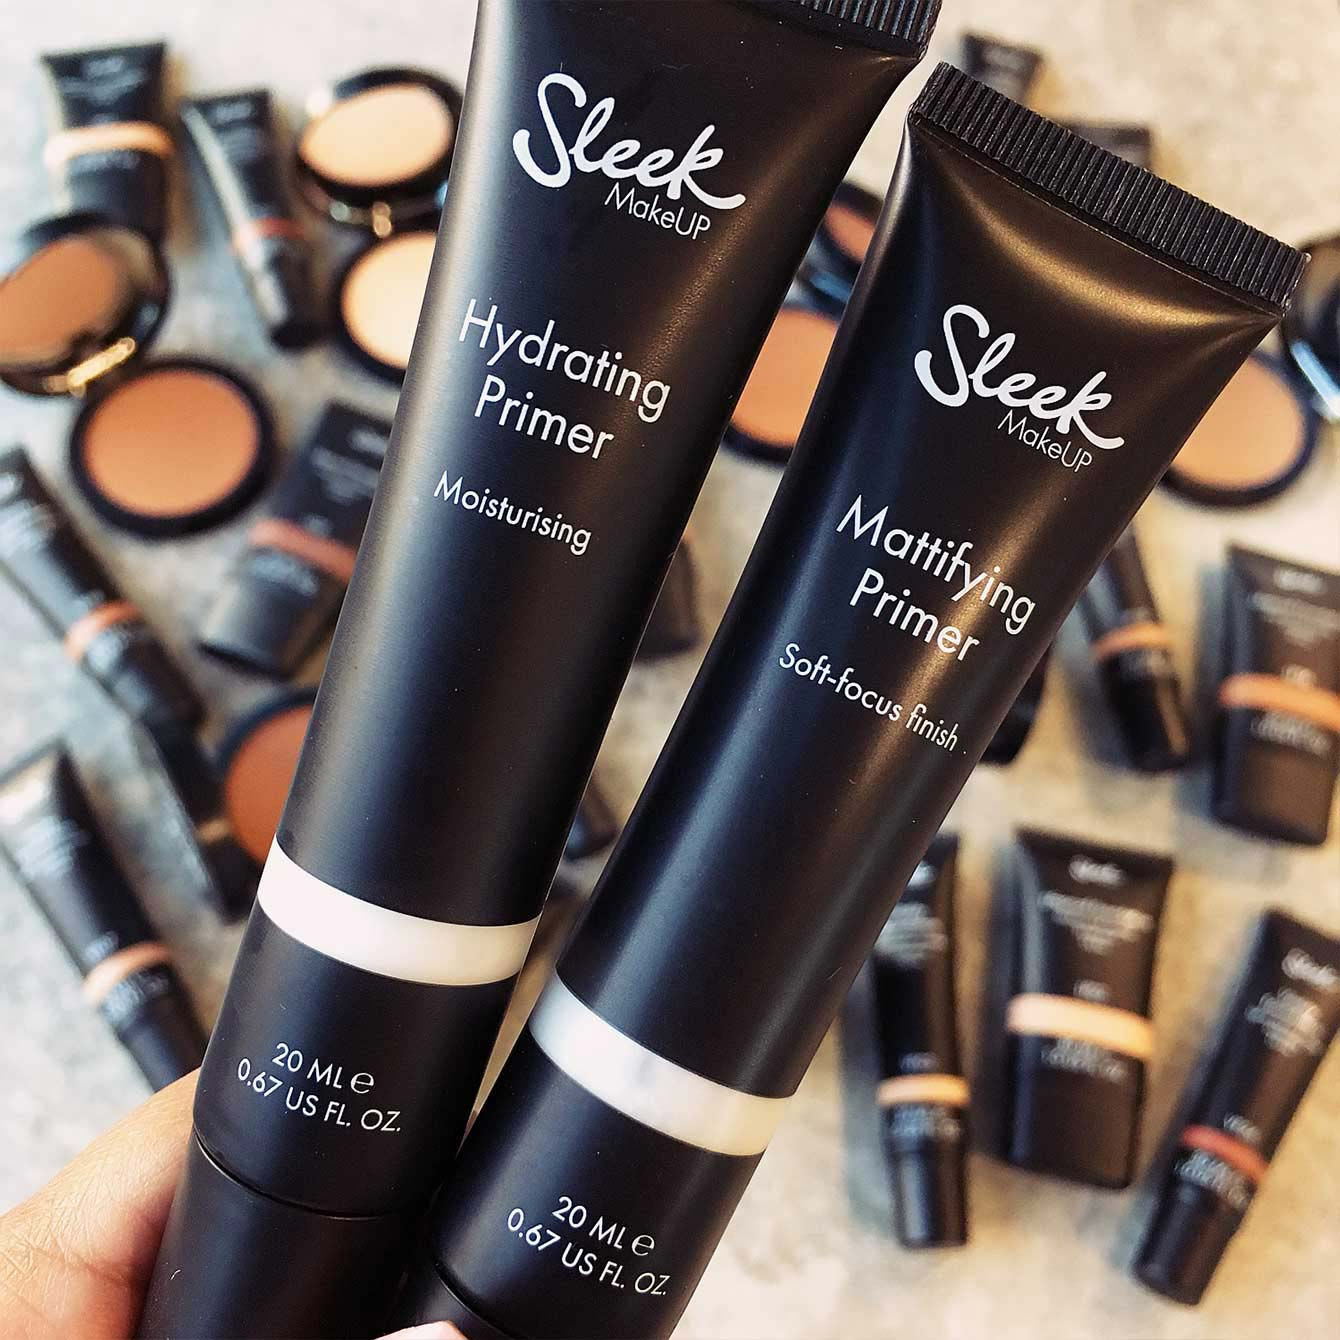 Matte Hydrating Primer Sleek Makeup Collection